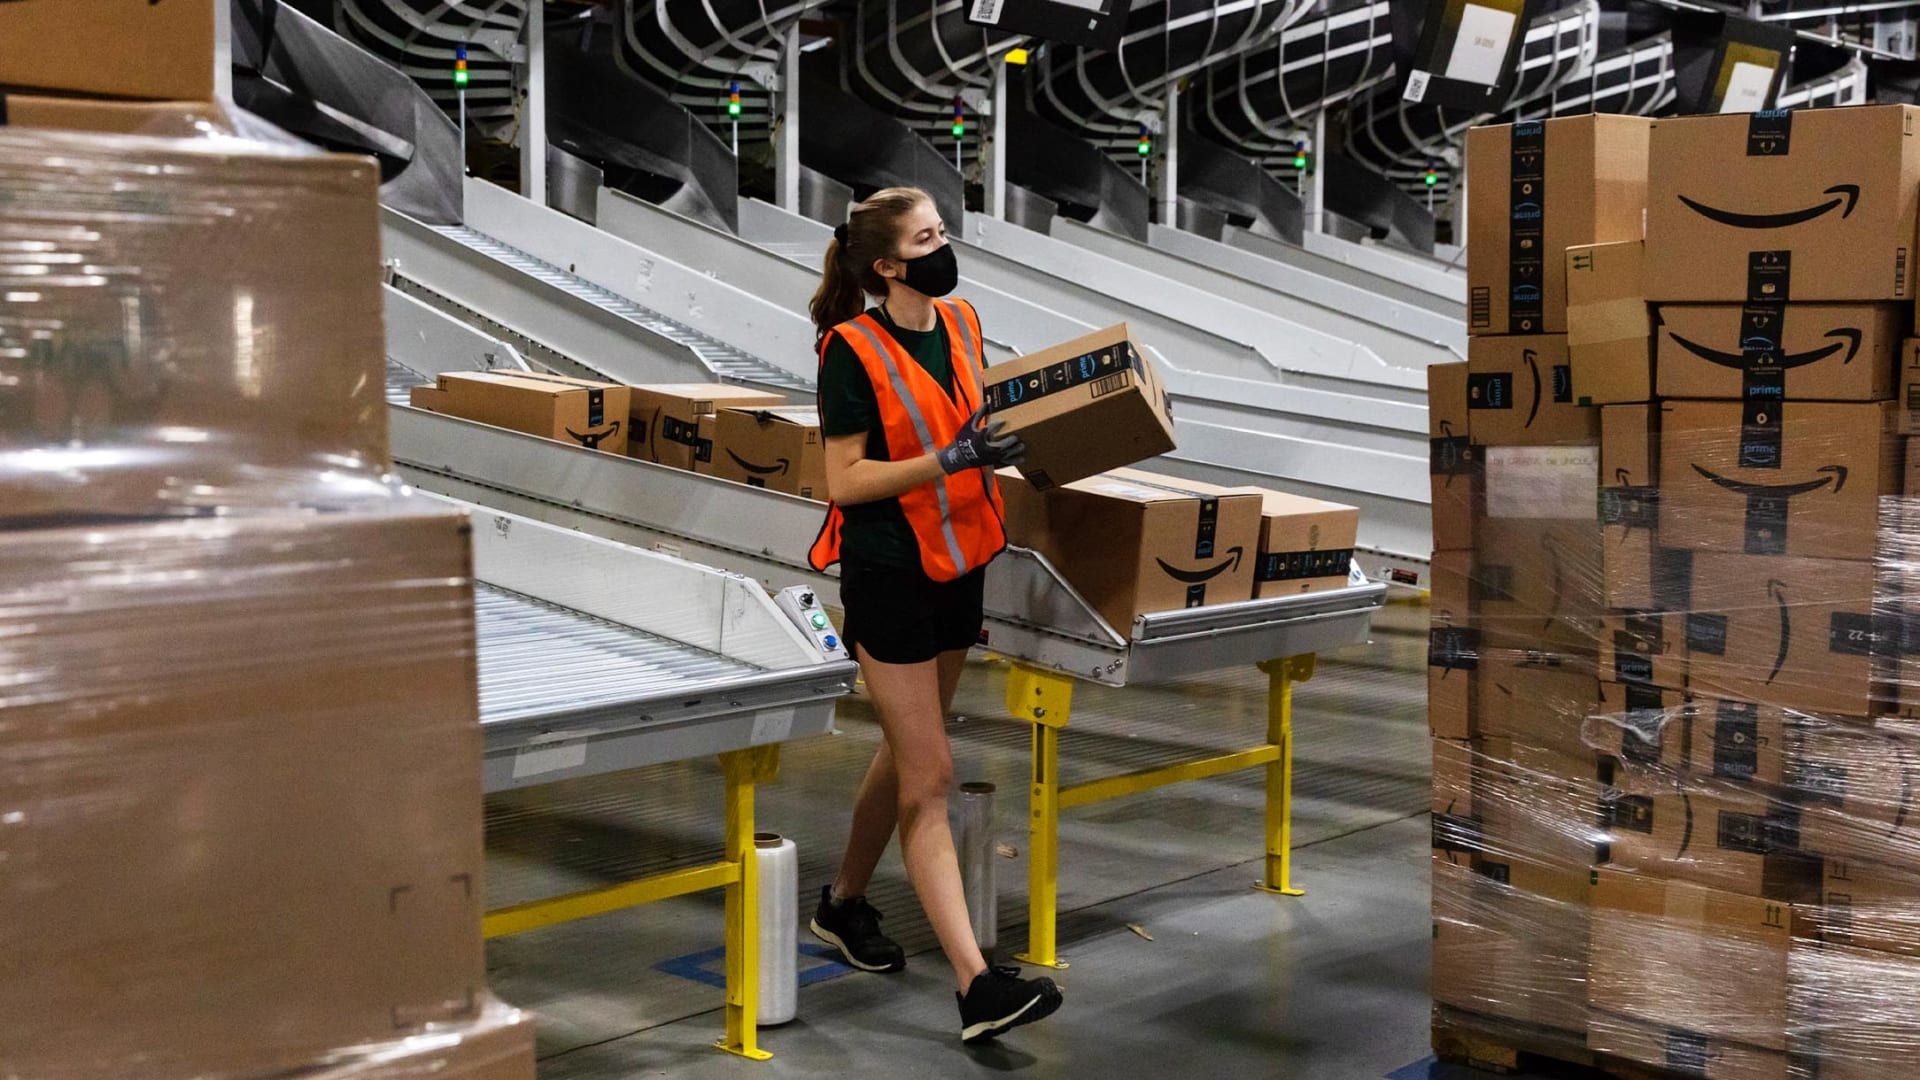 A worker loads boxes onto a pallet at an Amazon fulfillment center in Raleigh, North Carolina, during Prime Day 2021.